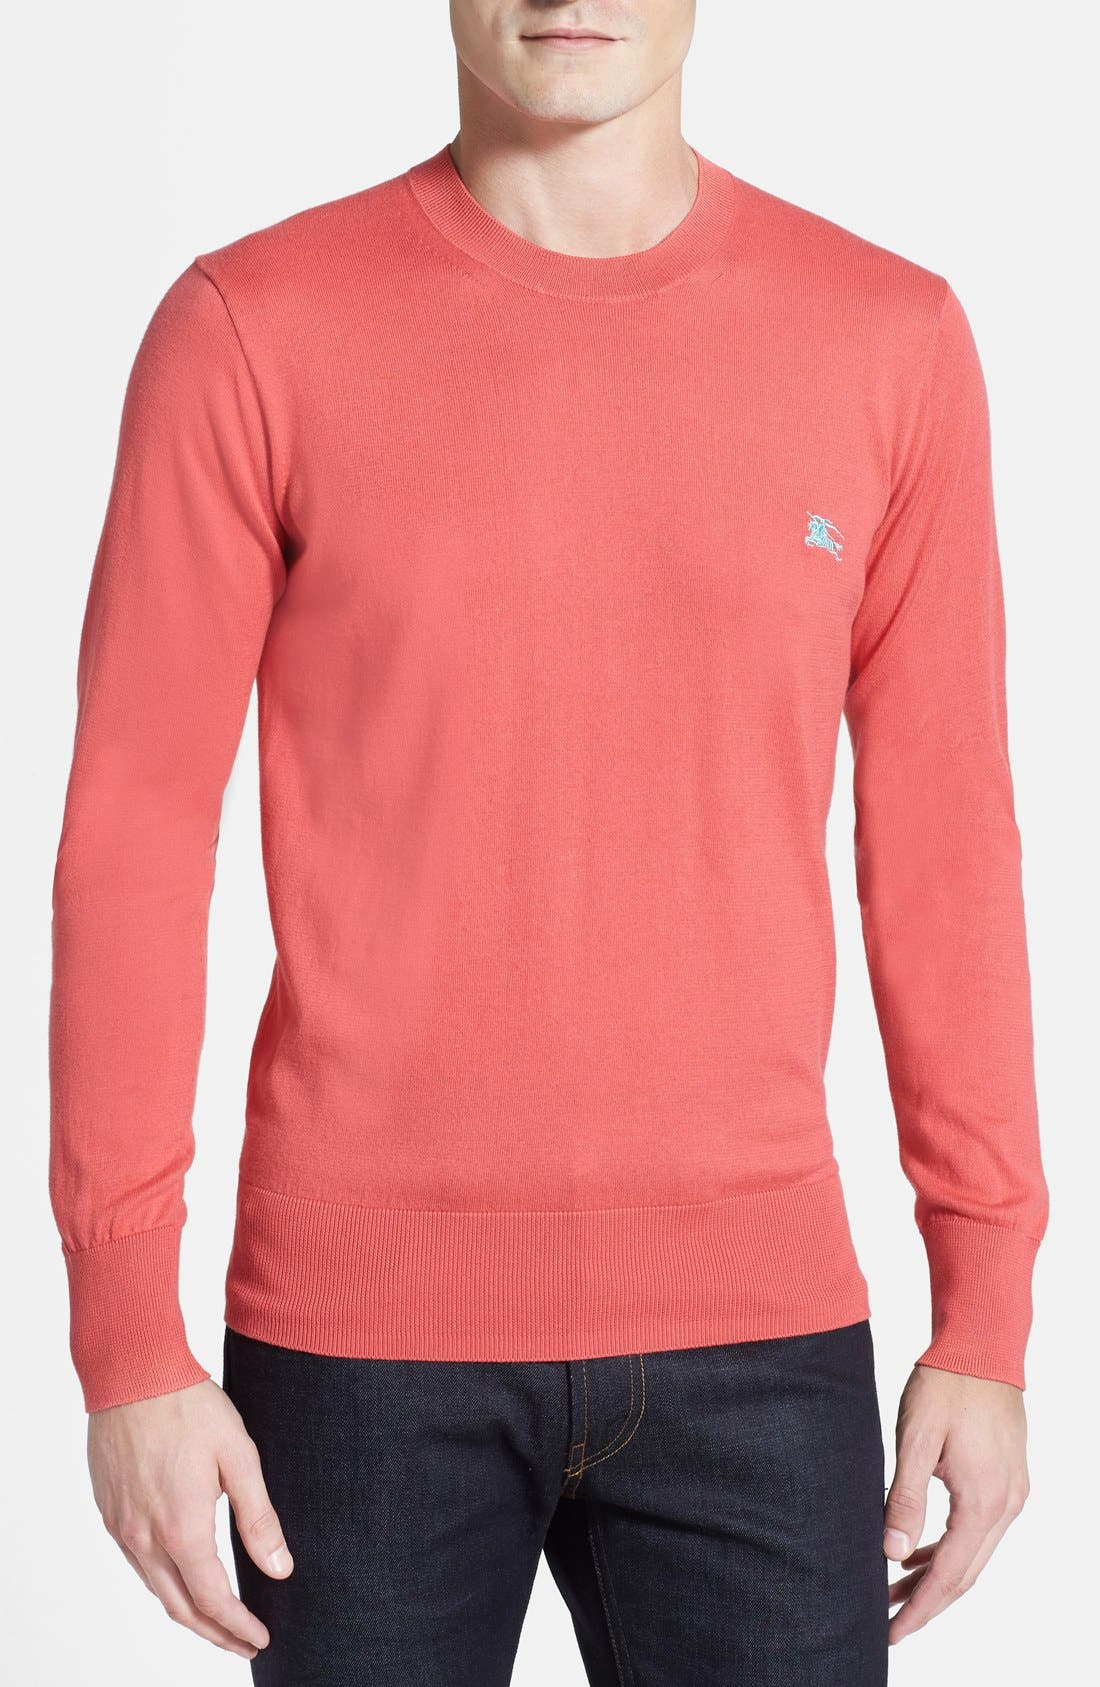 Main Image - Burberry 'Arnal' Crewneck Sweater